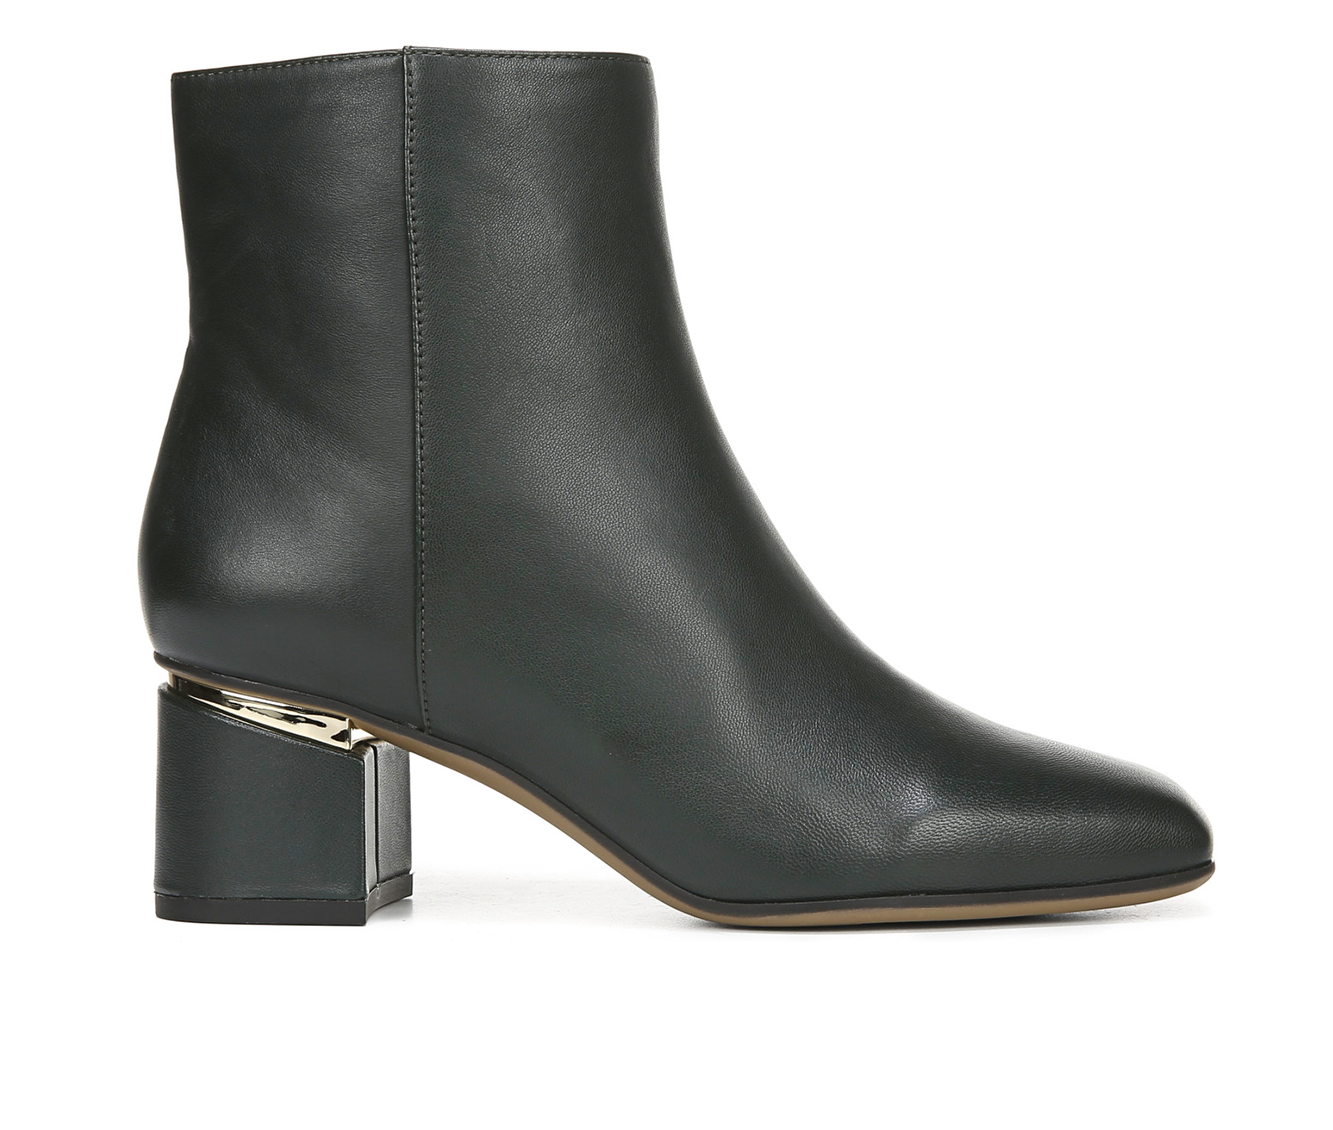 Franco Sarto Marquee Women's Boots (Green - Leather)